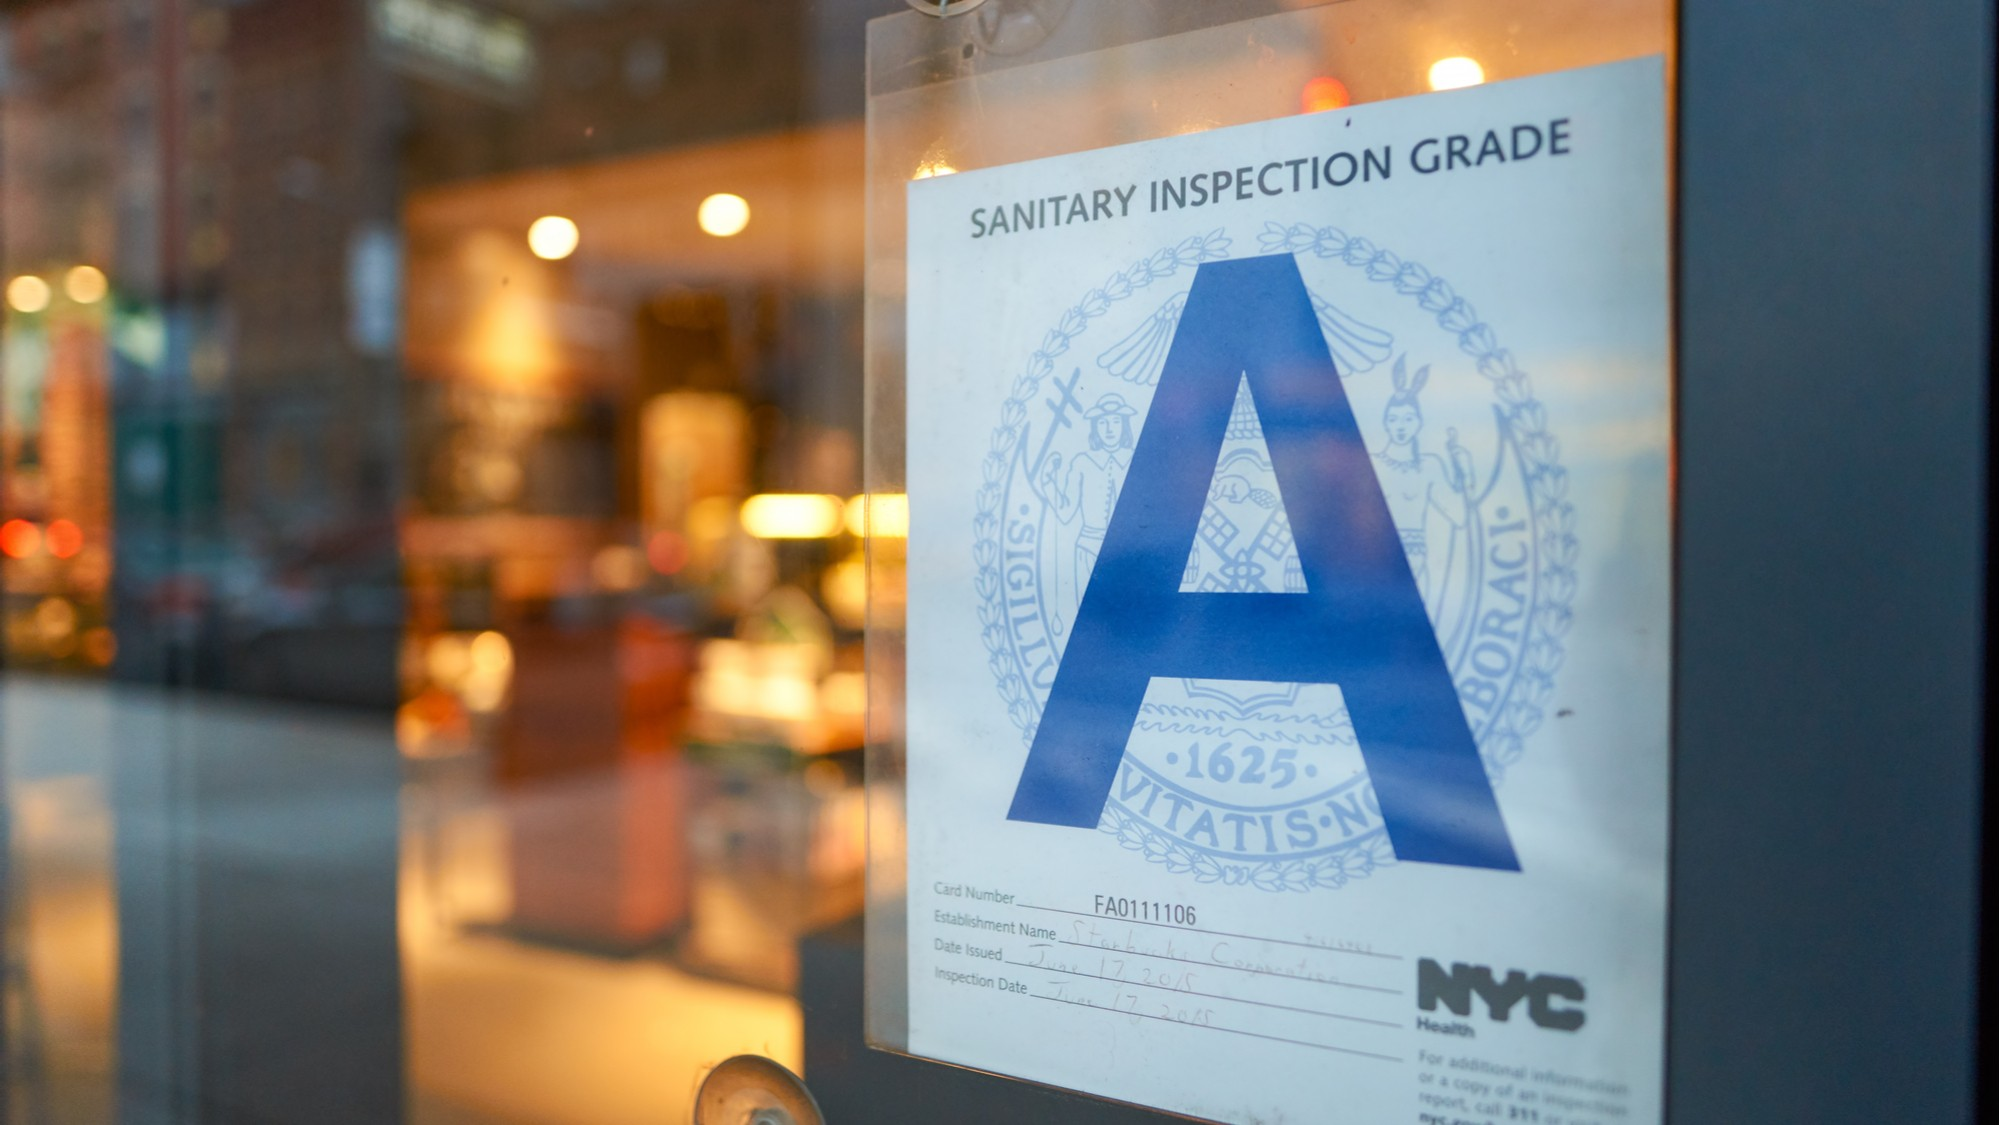 The Internet of Things Needs Food Safety-Style Ratings for